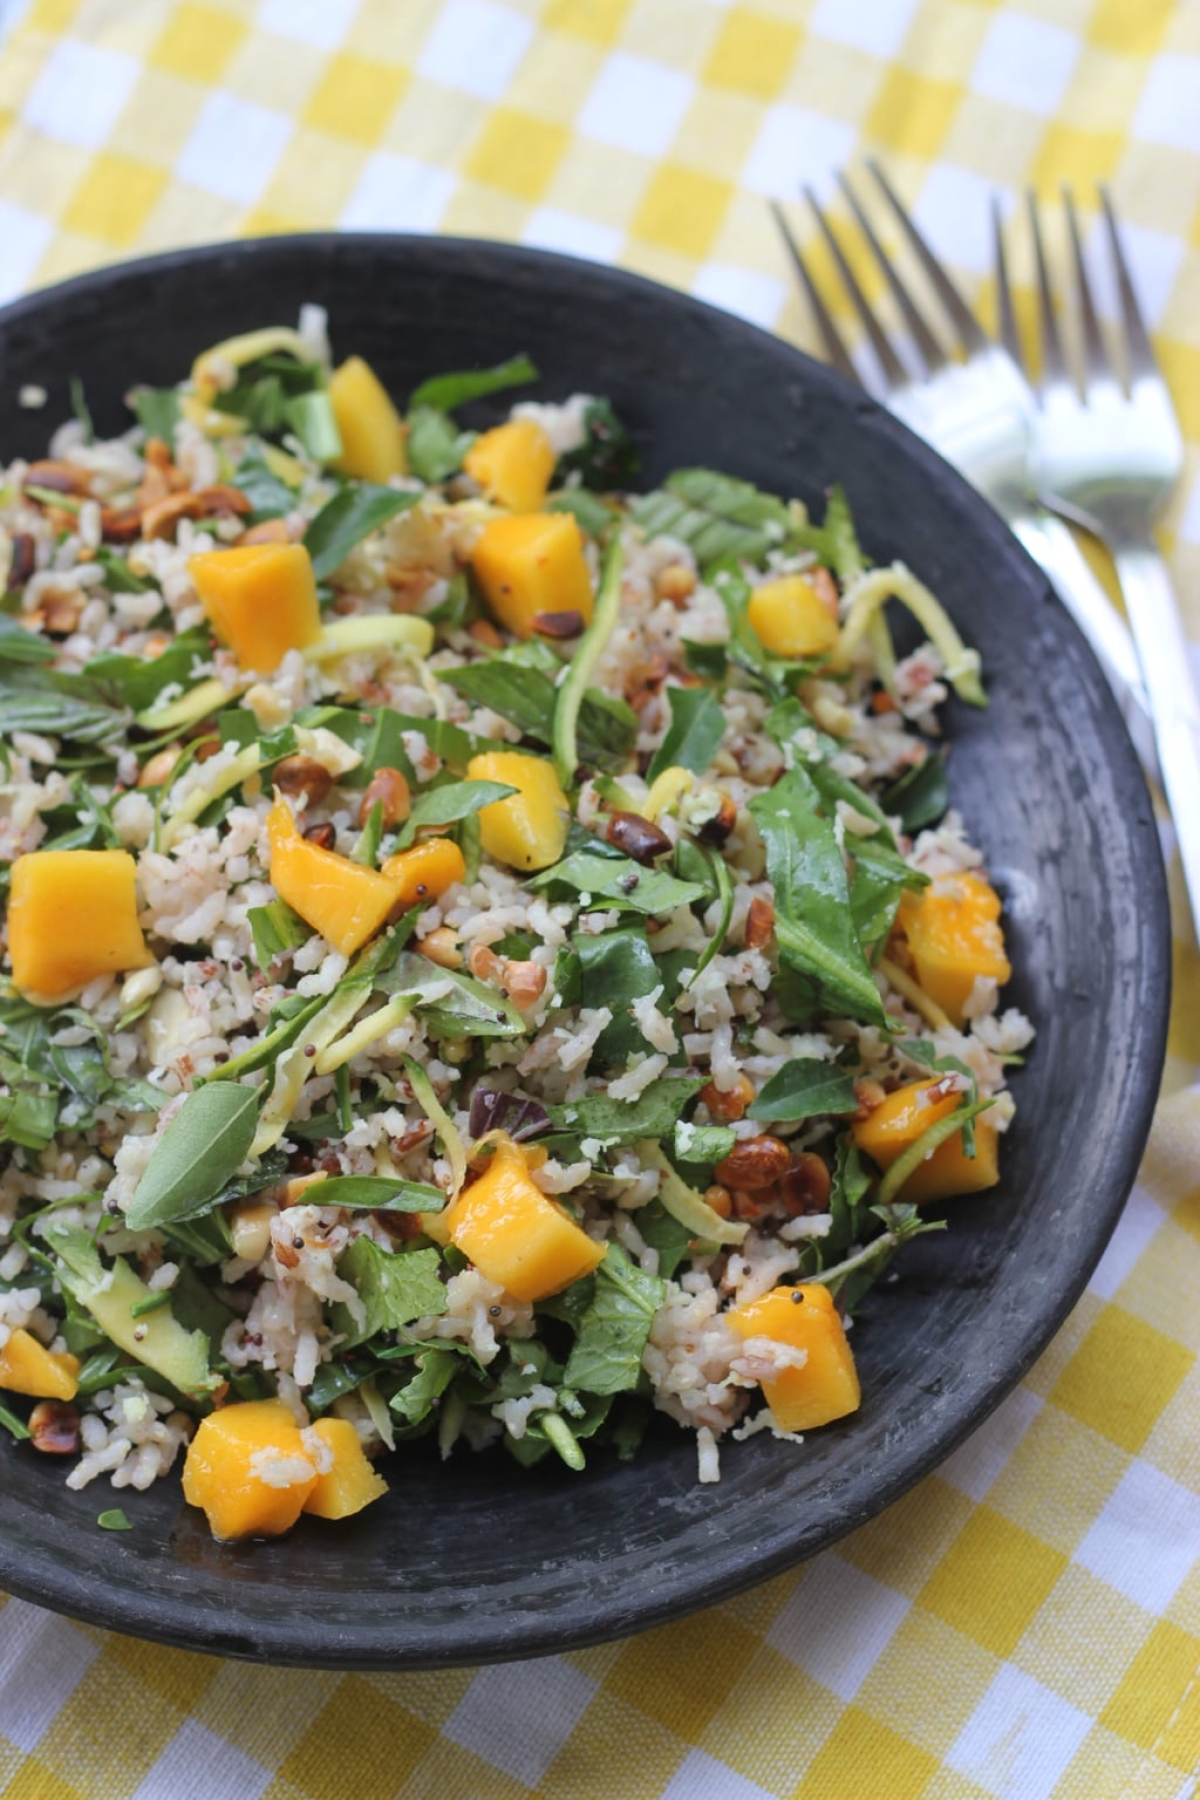 Cold red rice salad with green and ripe mangoes, coconut and a spicy dressing.